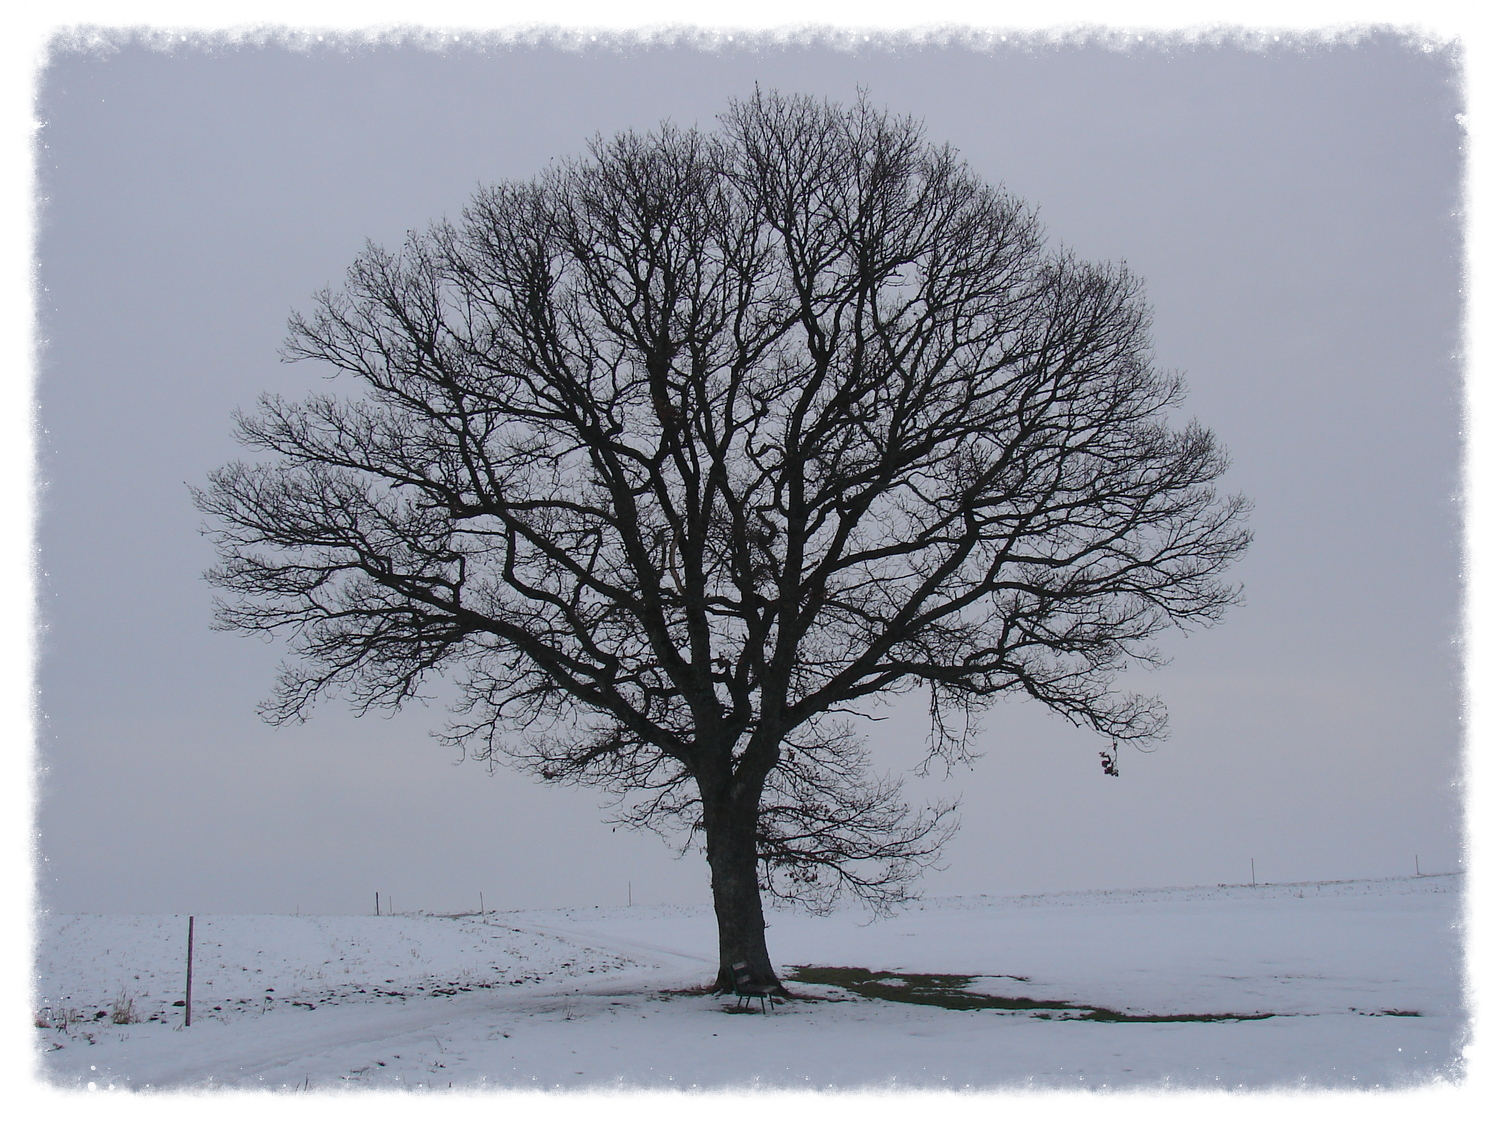 """""""Tree in winter time"""" by Norbert Utz (CC-BY-SA-3.0)"""